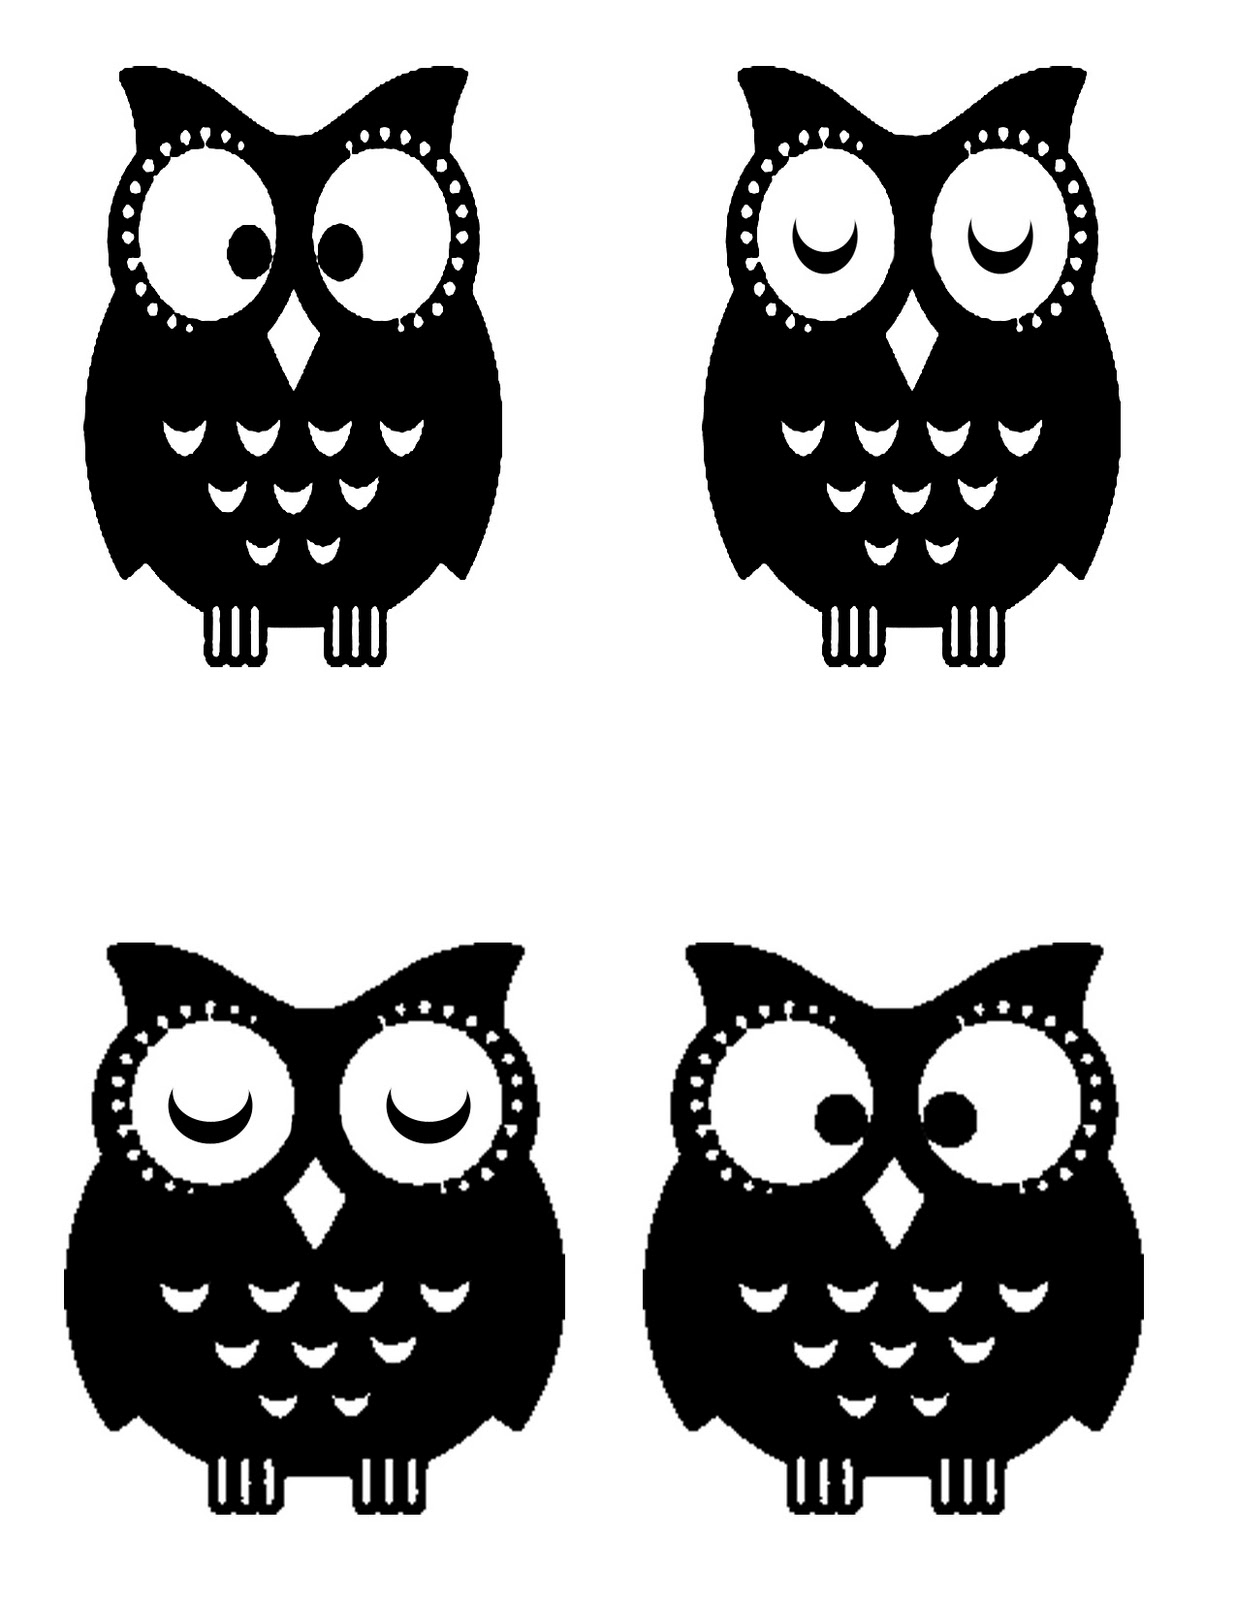 Nursery Decorating Ideas Part 4: Vintage Windows with Owls! Baby Owl Black And White